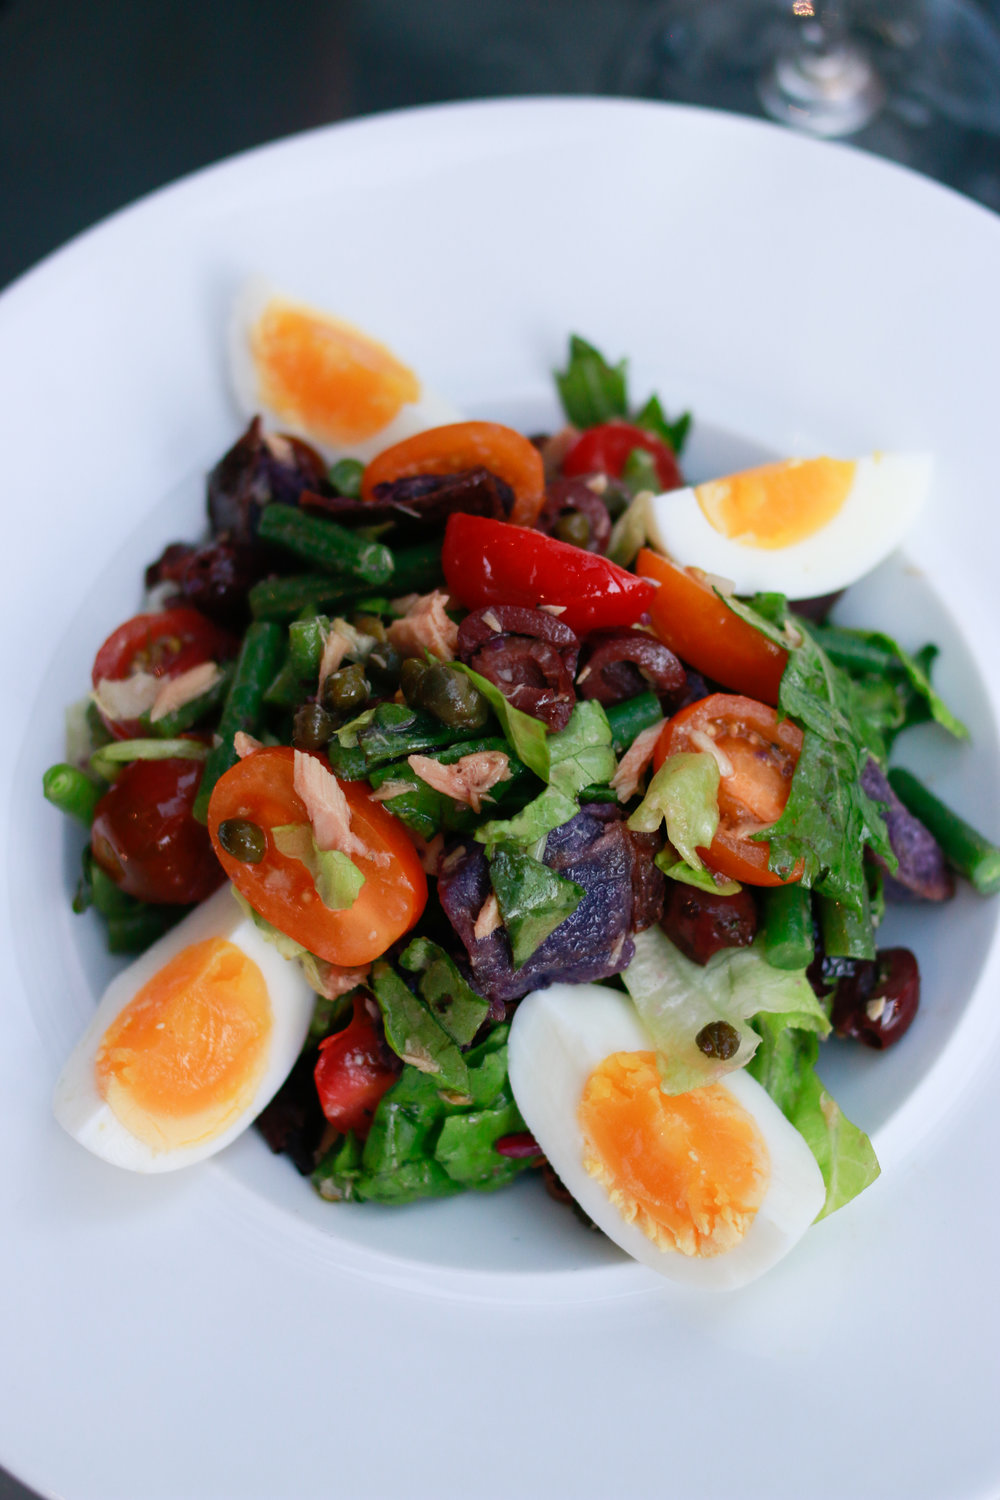 salade niçoise marchesa chicago